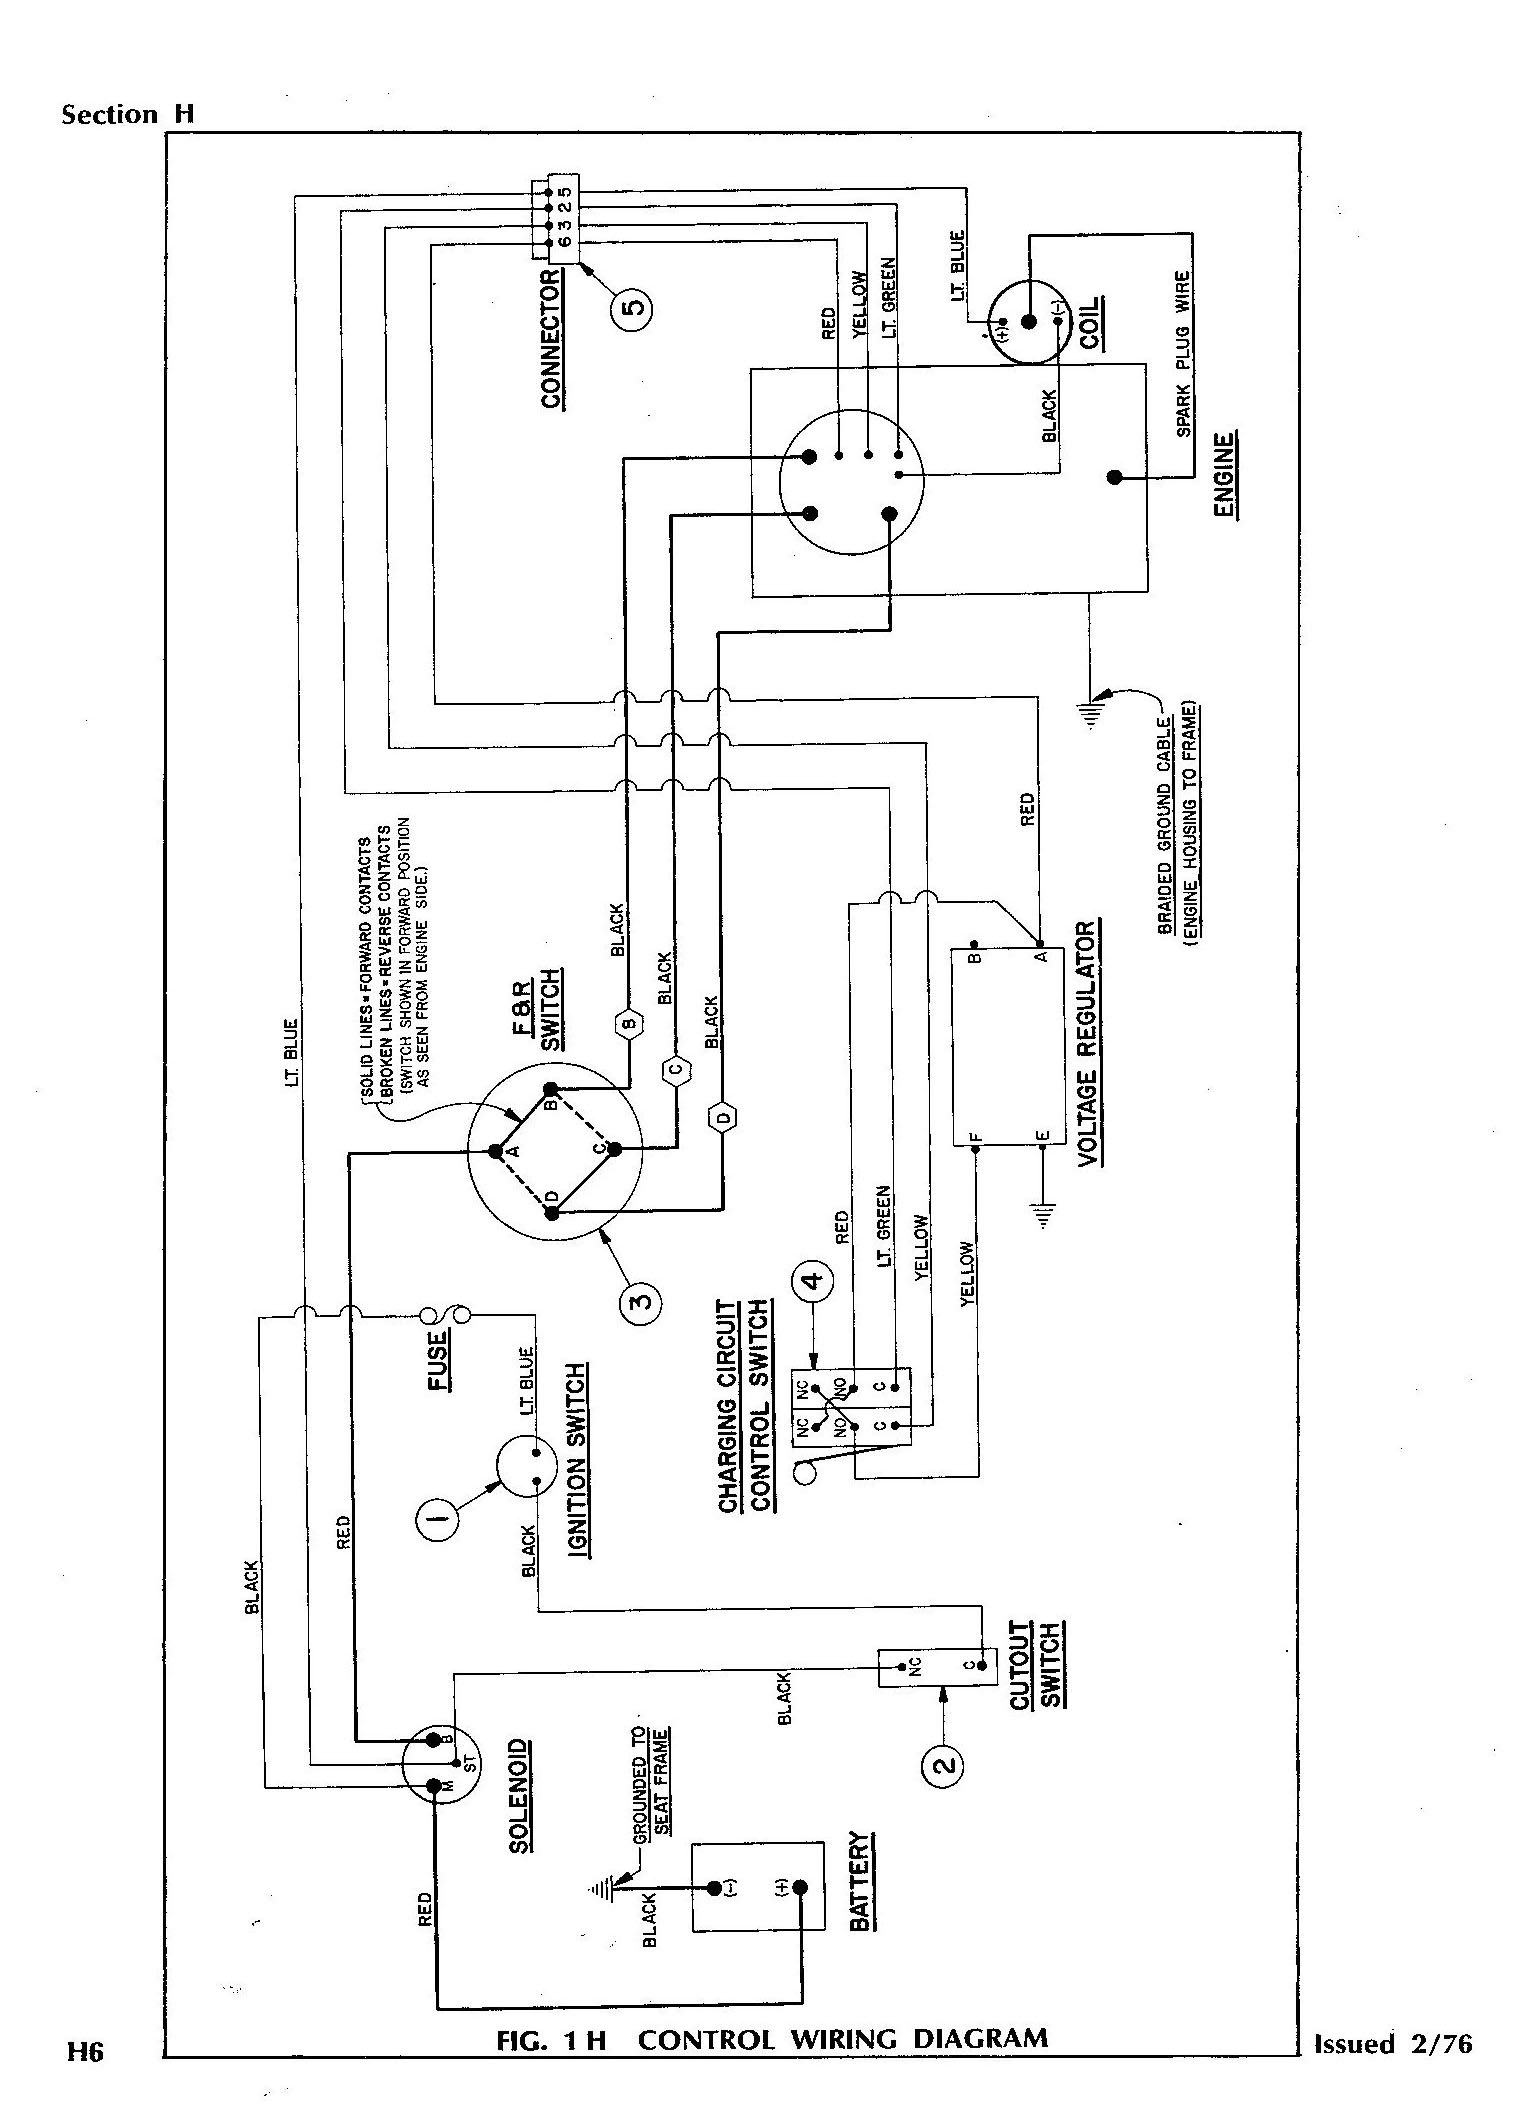 small trailer wiring diagram